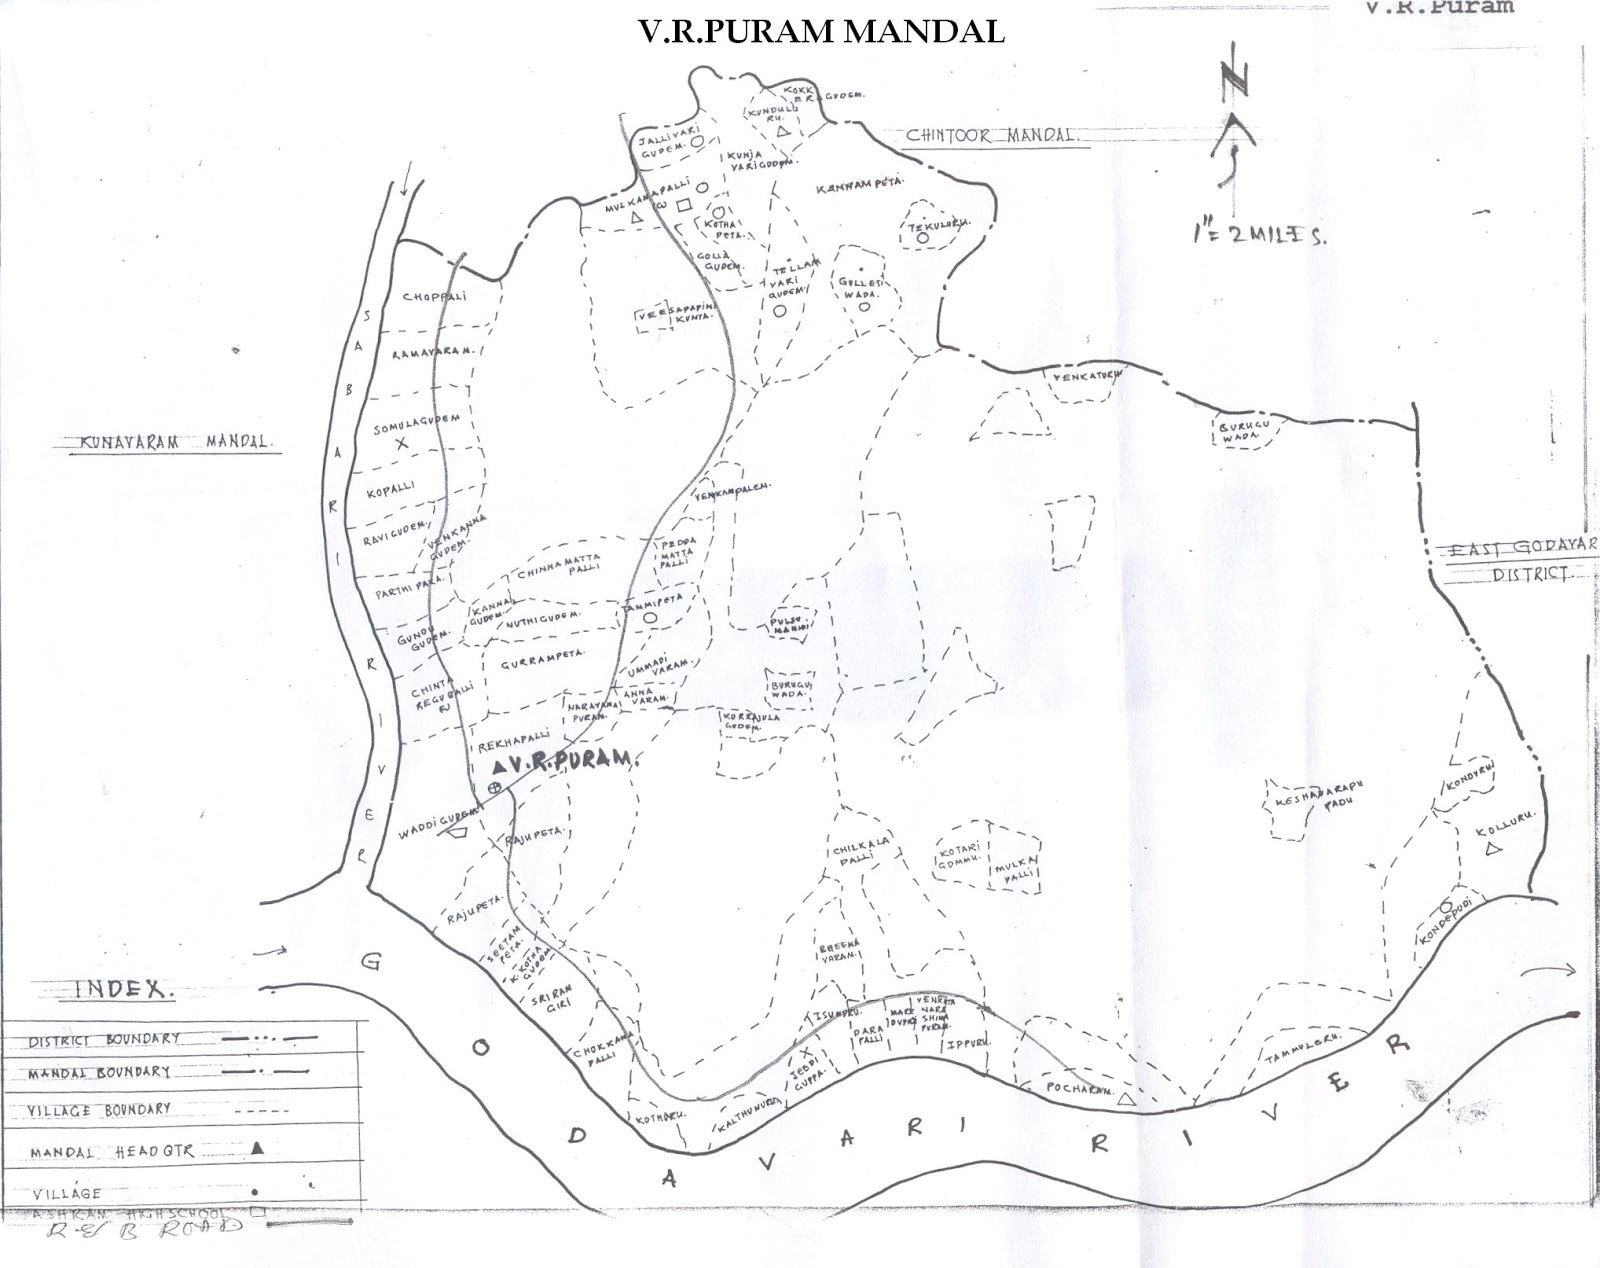 sub collector's office, bhadrachalam v.r.puram mandal map